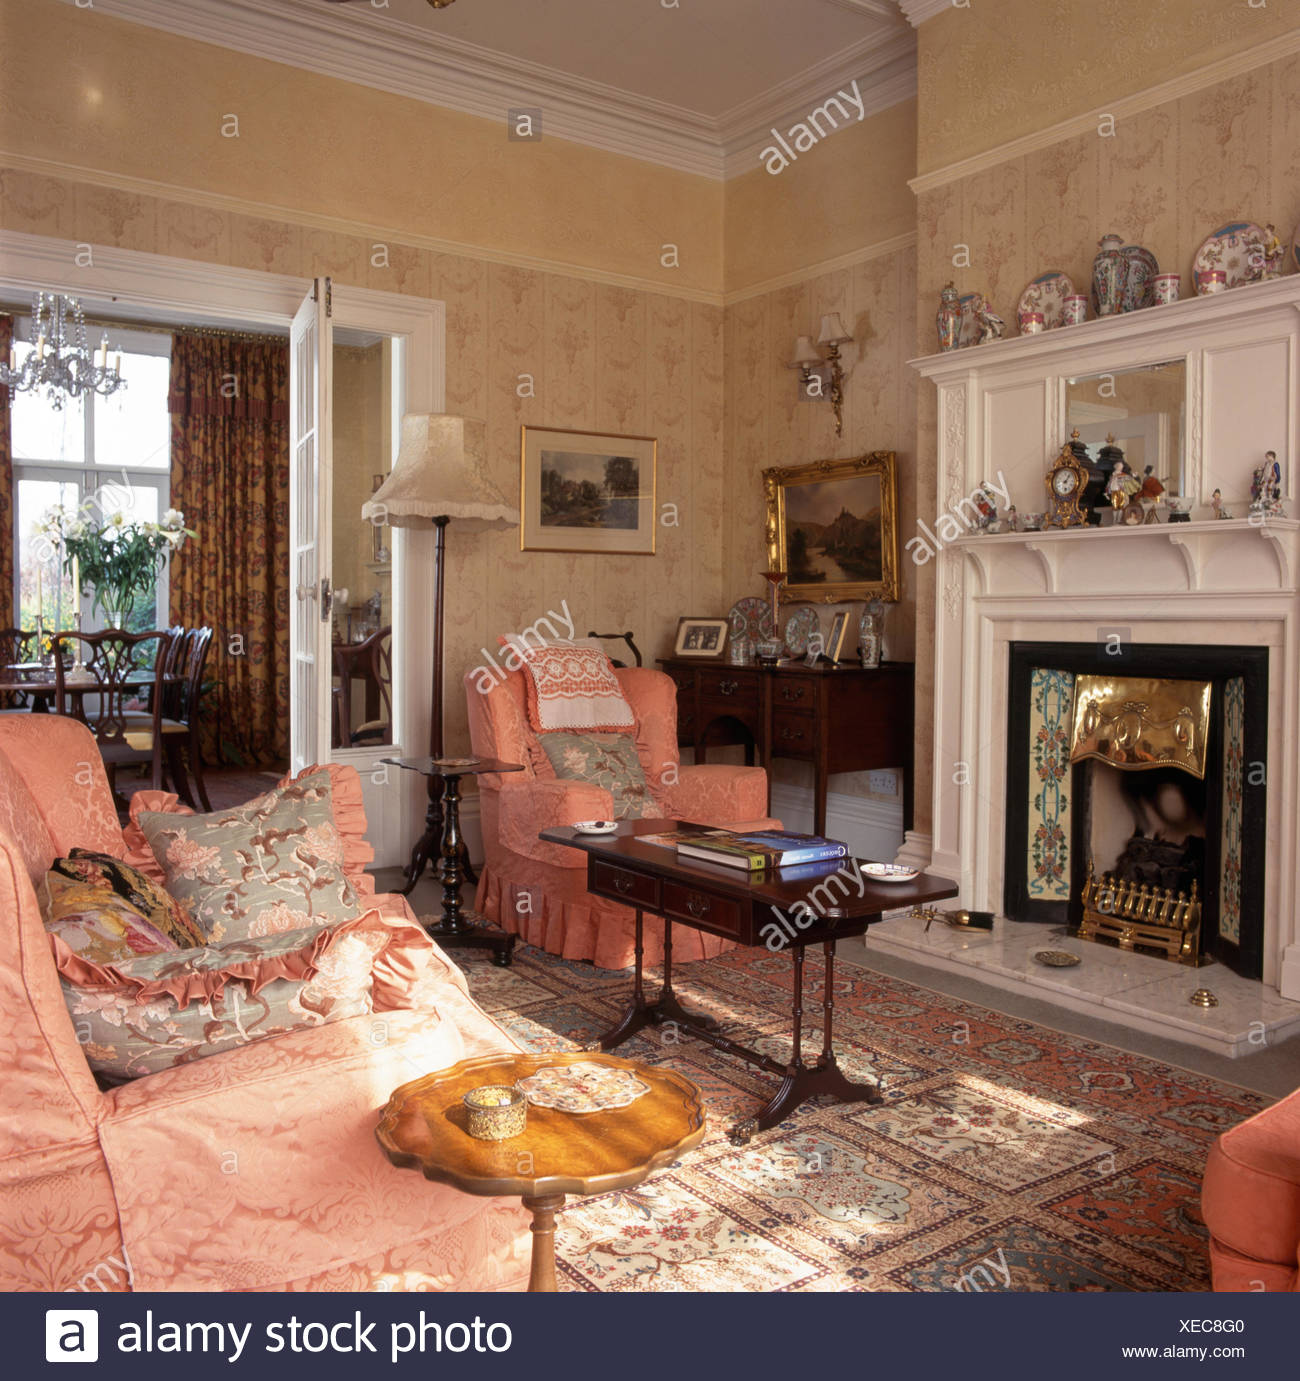 Pink damask sofa and armchair in very traditional living room Stock Photo